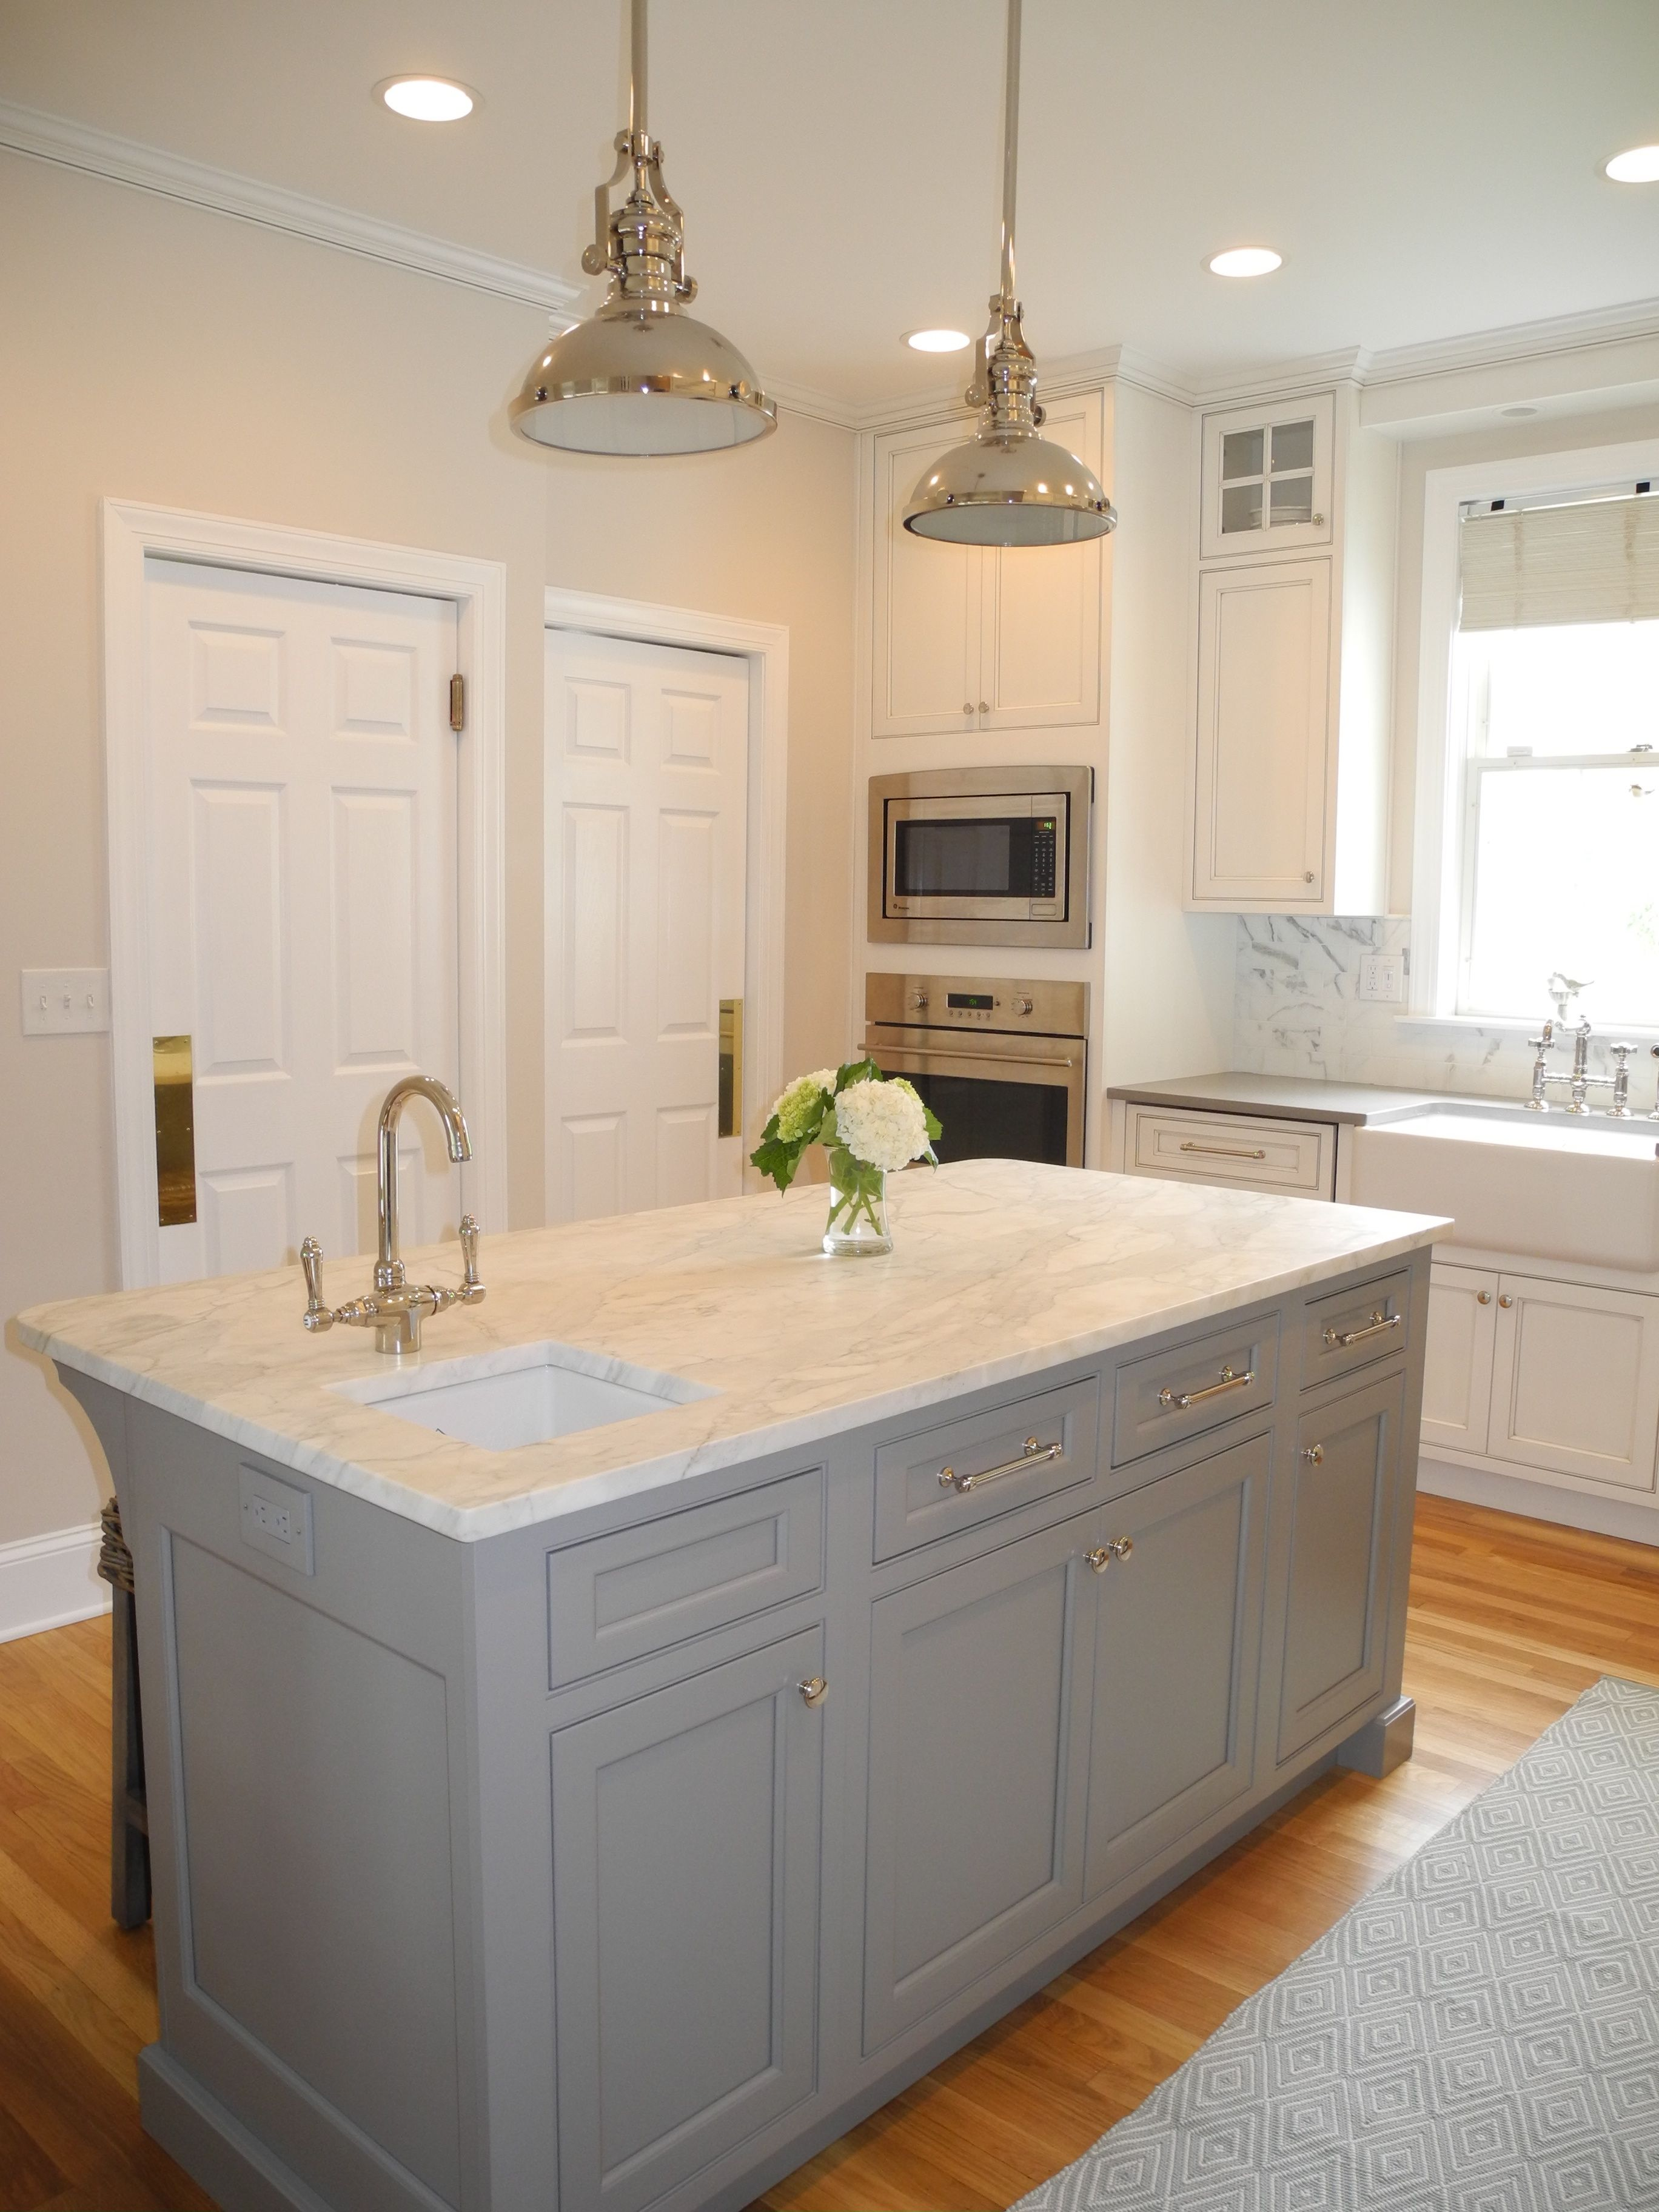 Contrasting Plain And Fancy Island And Cabinets Kitchen Projects Kitchen Mill Valley Kitchen